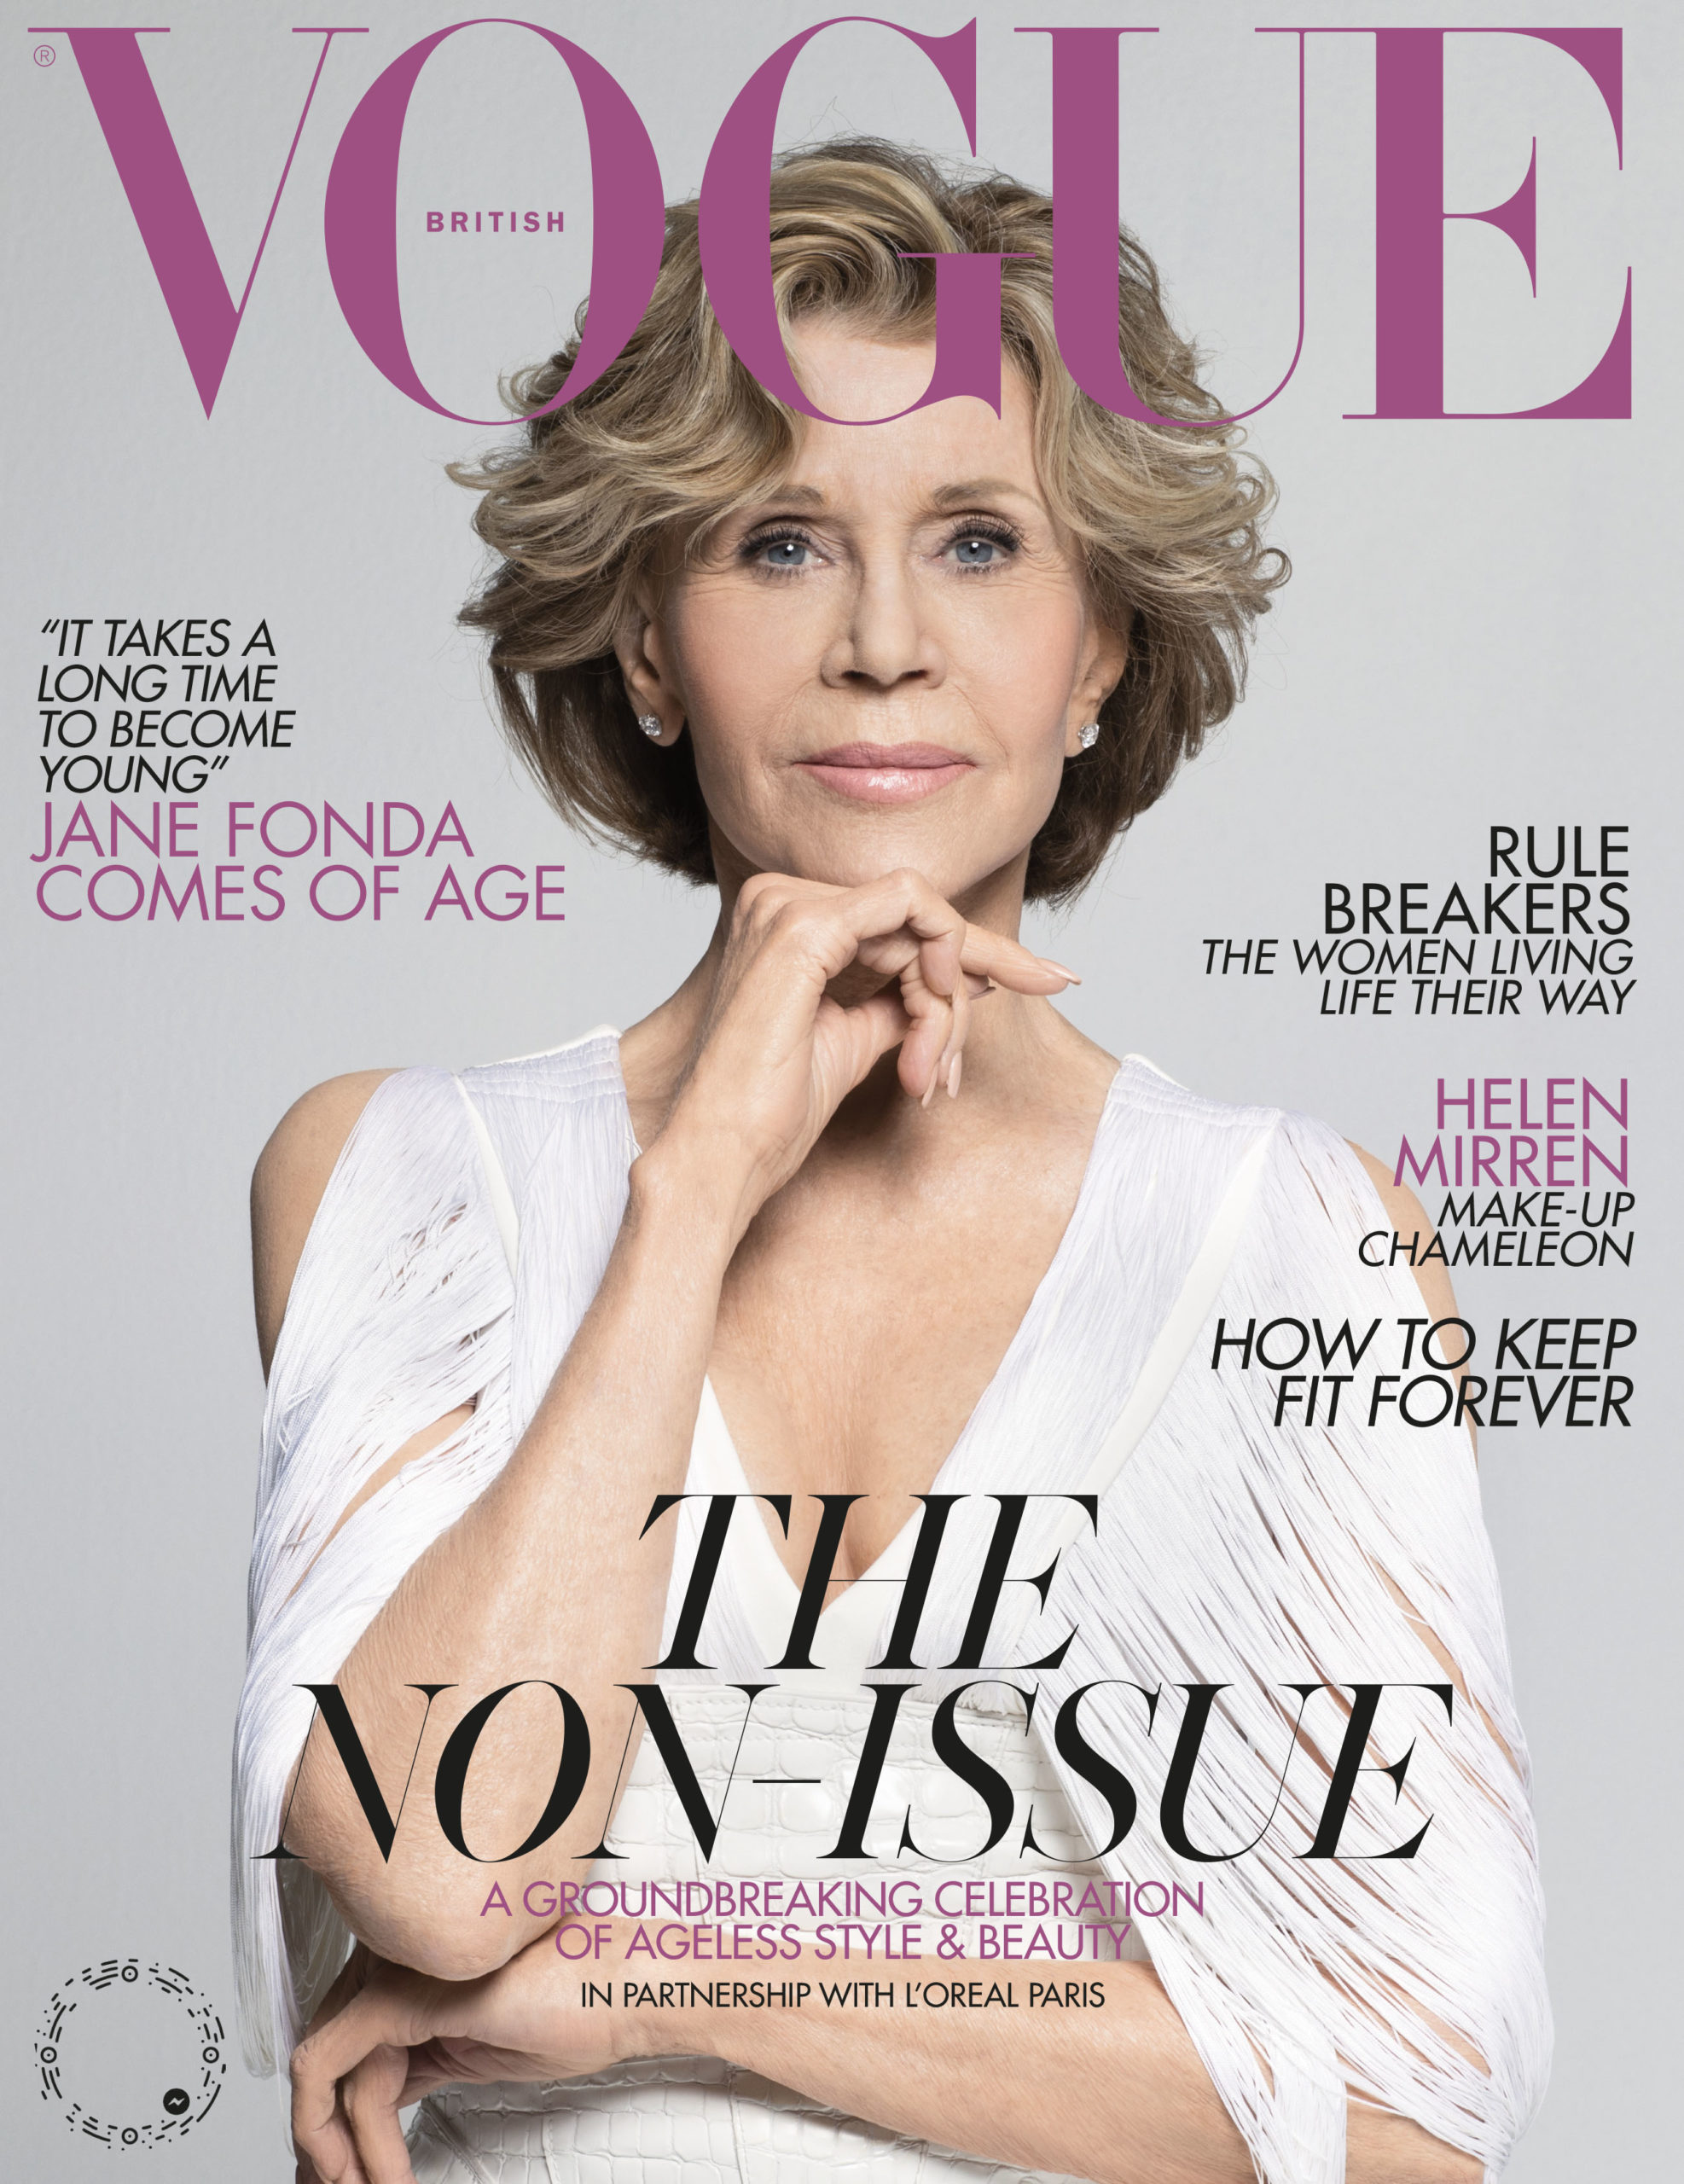 Vogue - The Non-issue